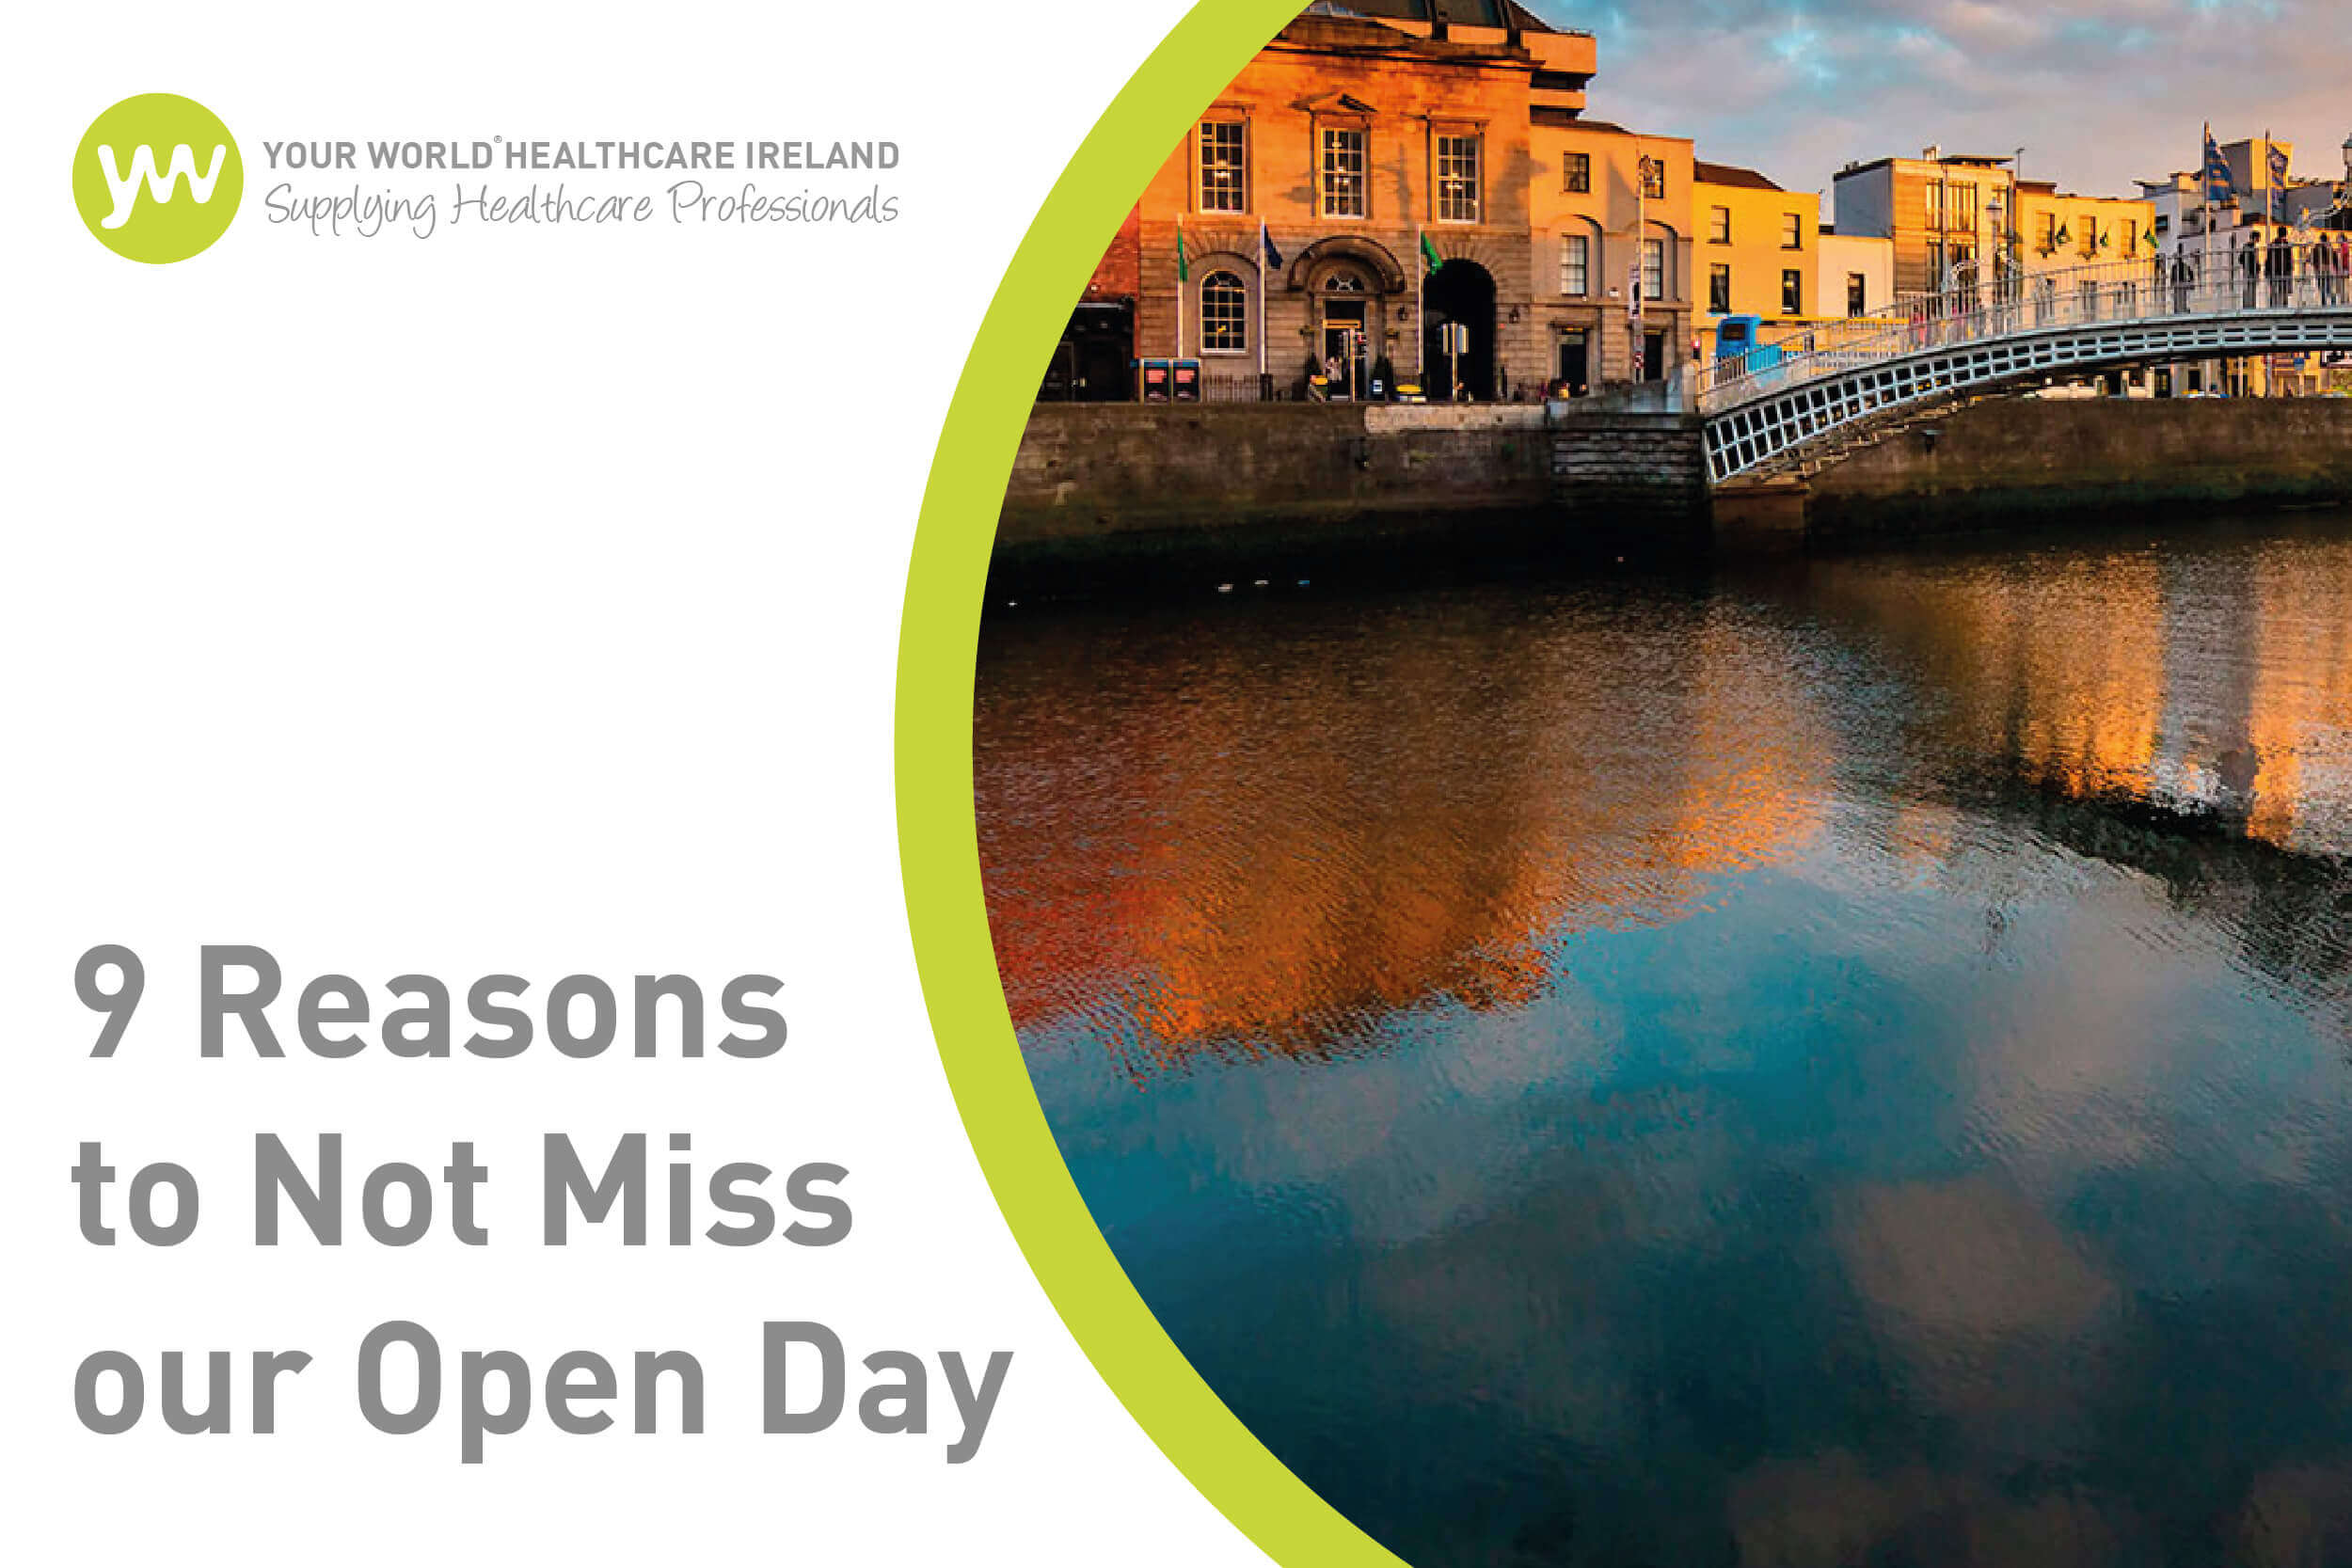 9 Reasons to Not Miss Our Open Day!